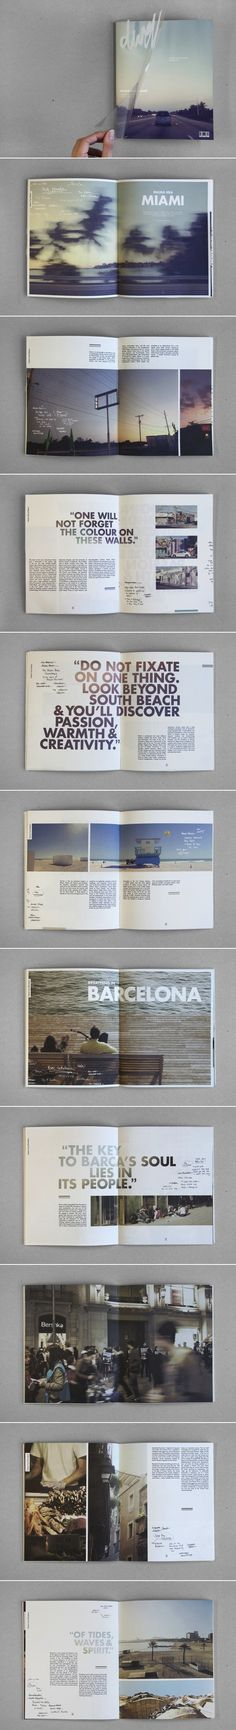 Dwell - Coastal Cities Revisited by Sidney Lim YX